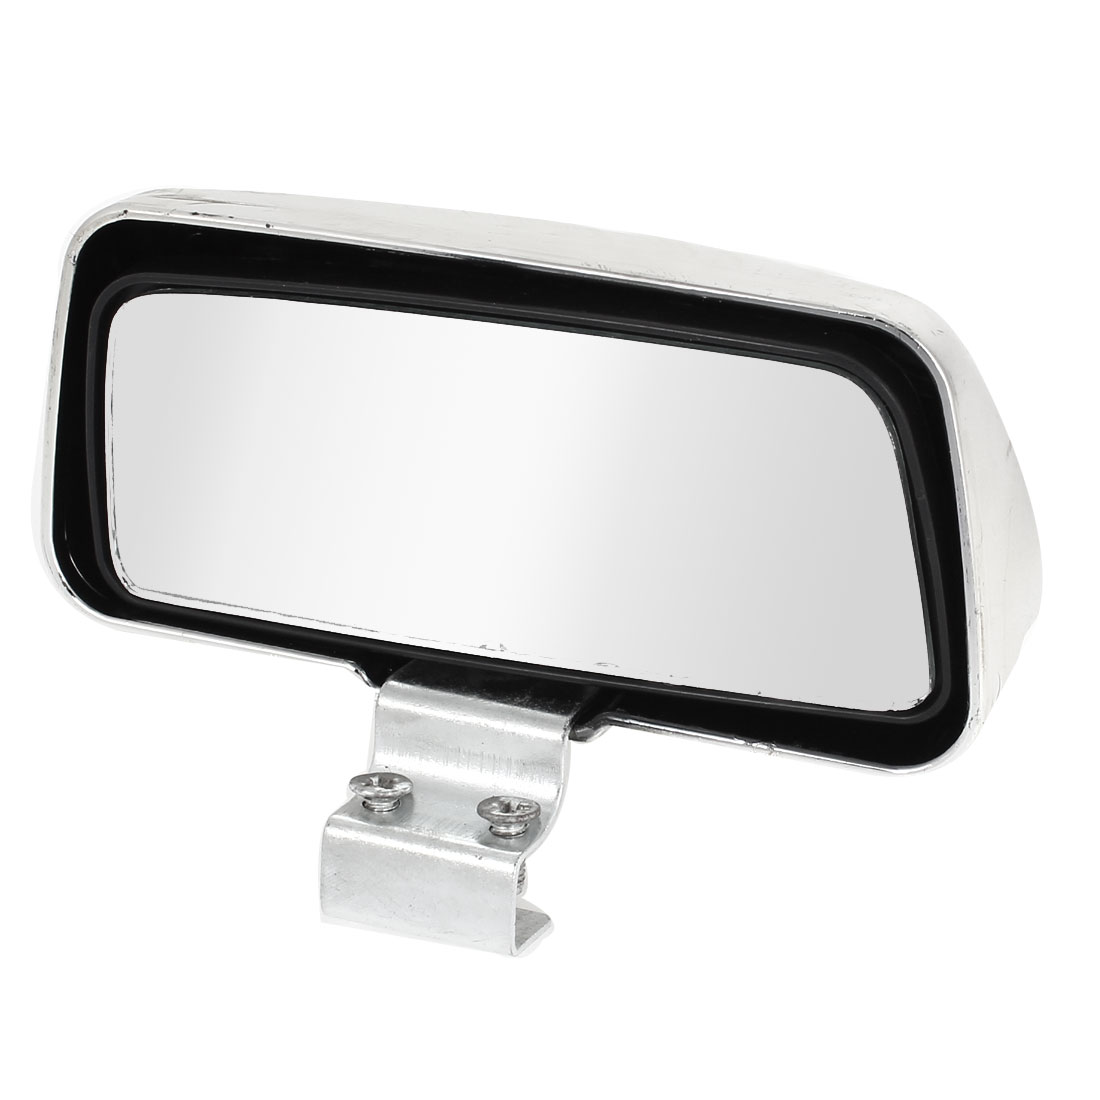 Silver Tone Case Adjustable Rectangle Convex Vehicle Rear View Blind Spot Mirror